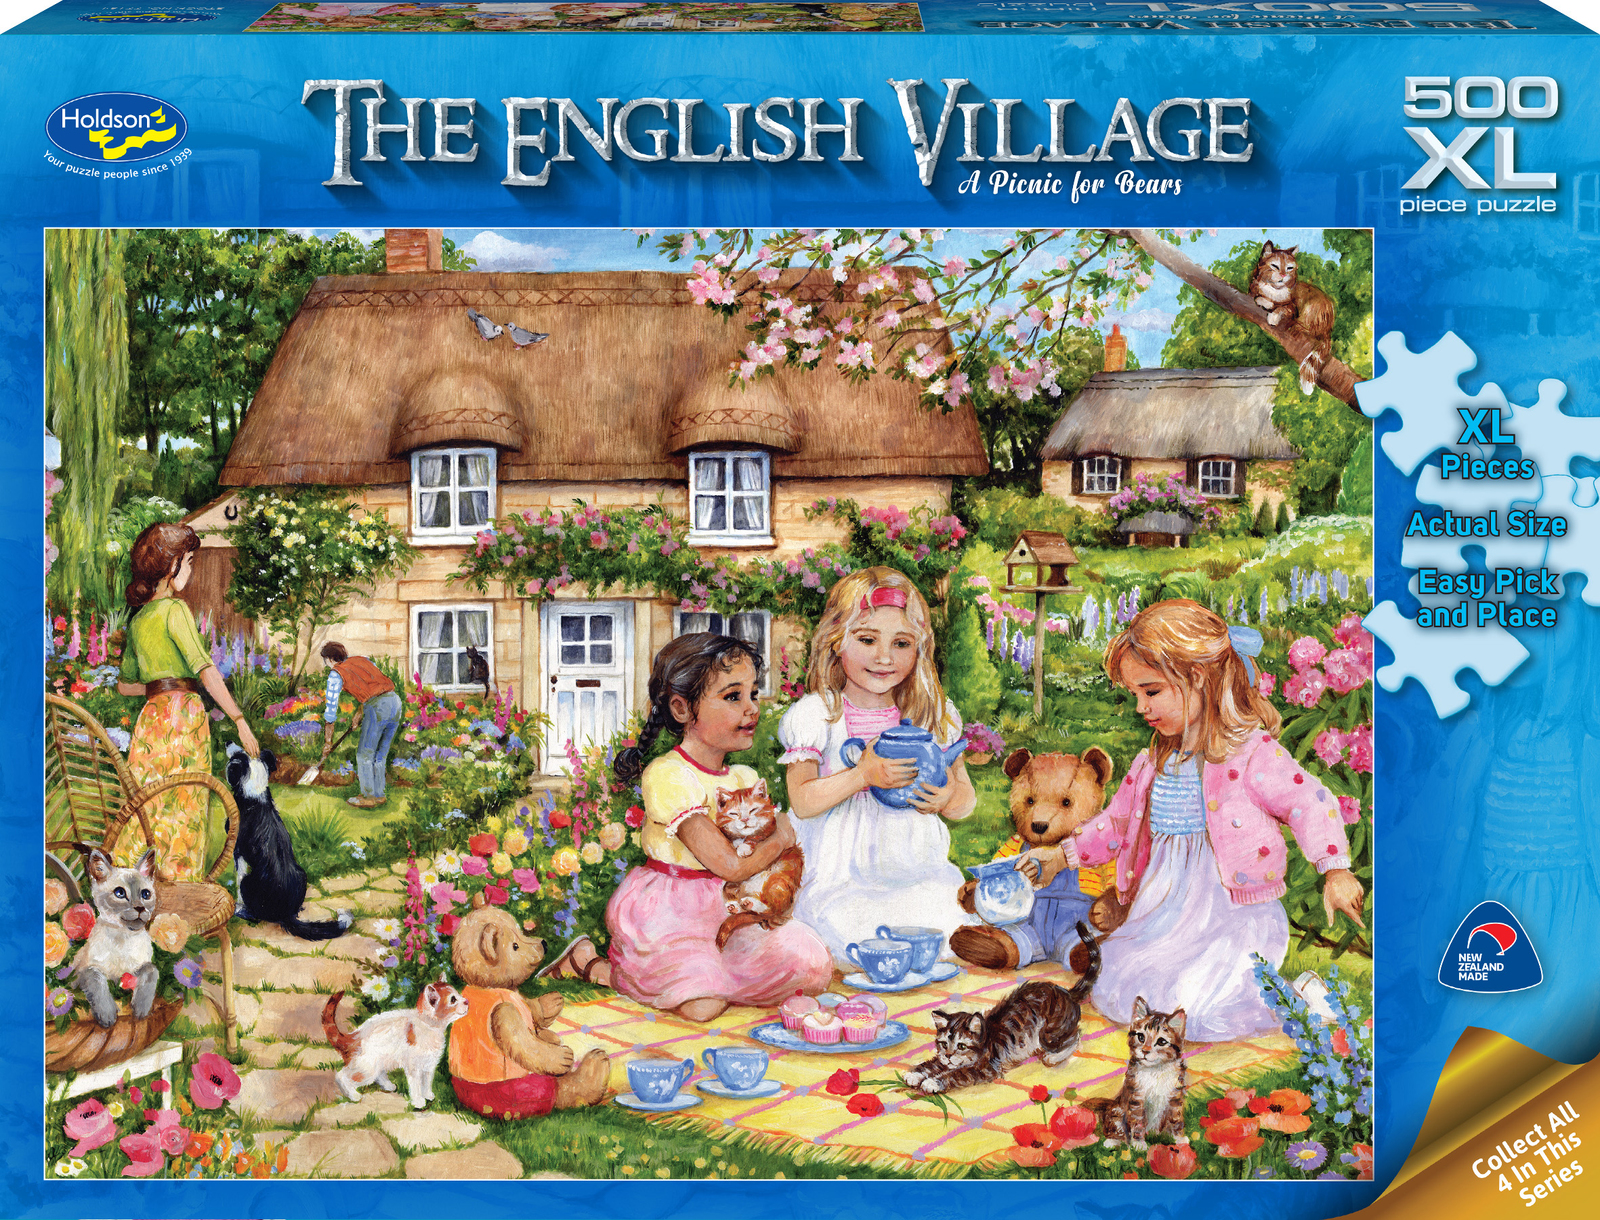 Holdson XL: 500 Piece Puzzle - The English Village S2 (A Picnic for Bears) image